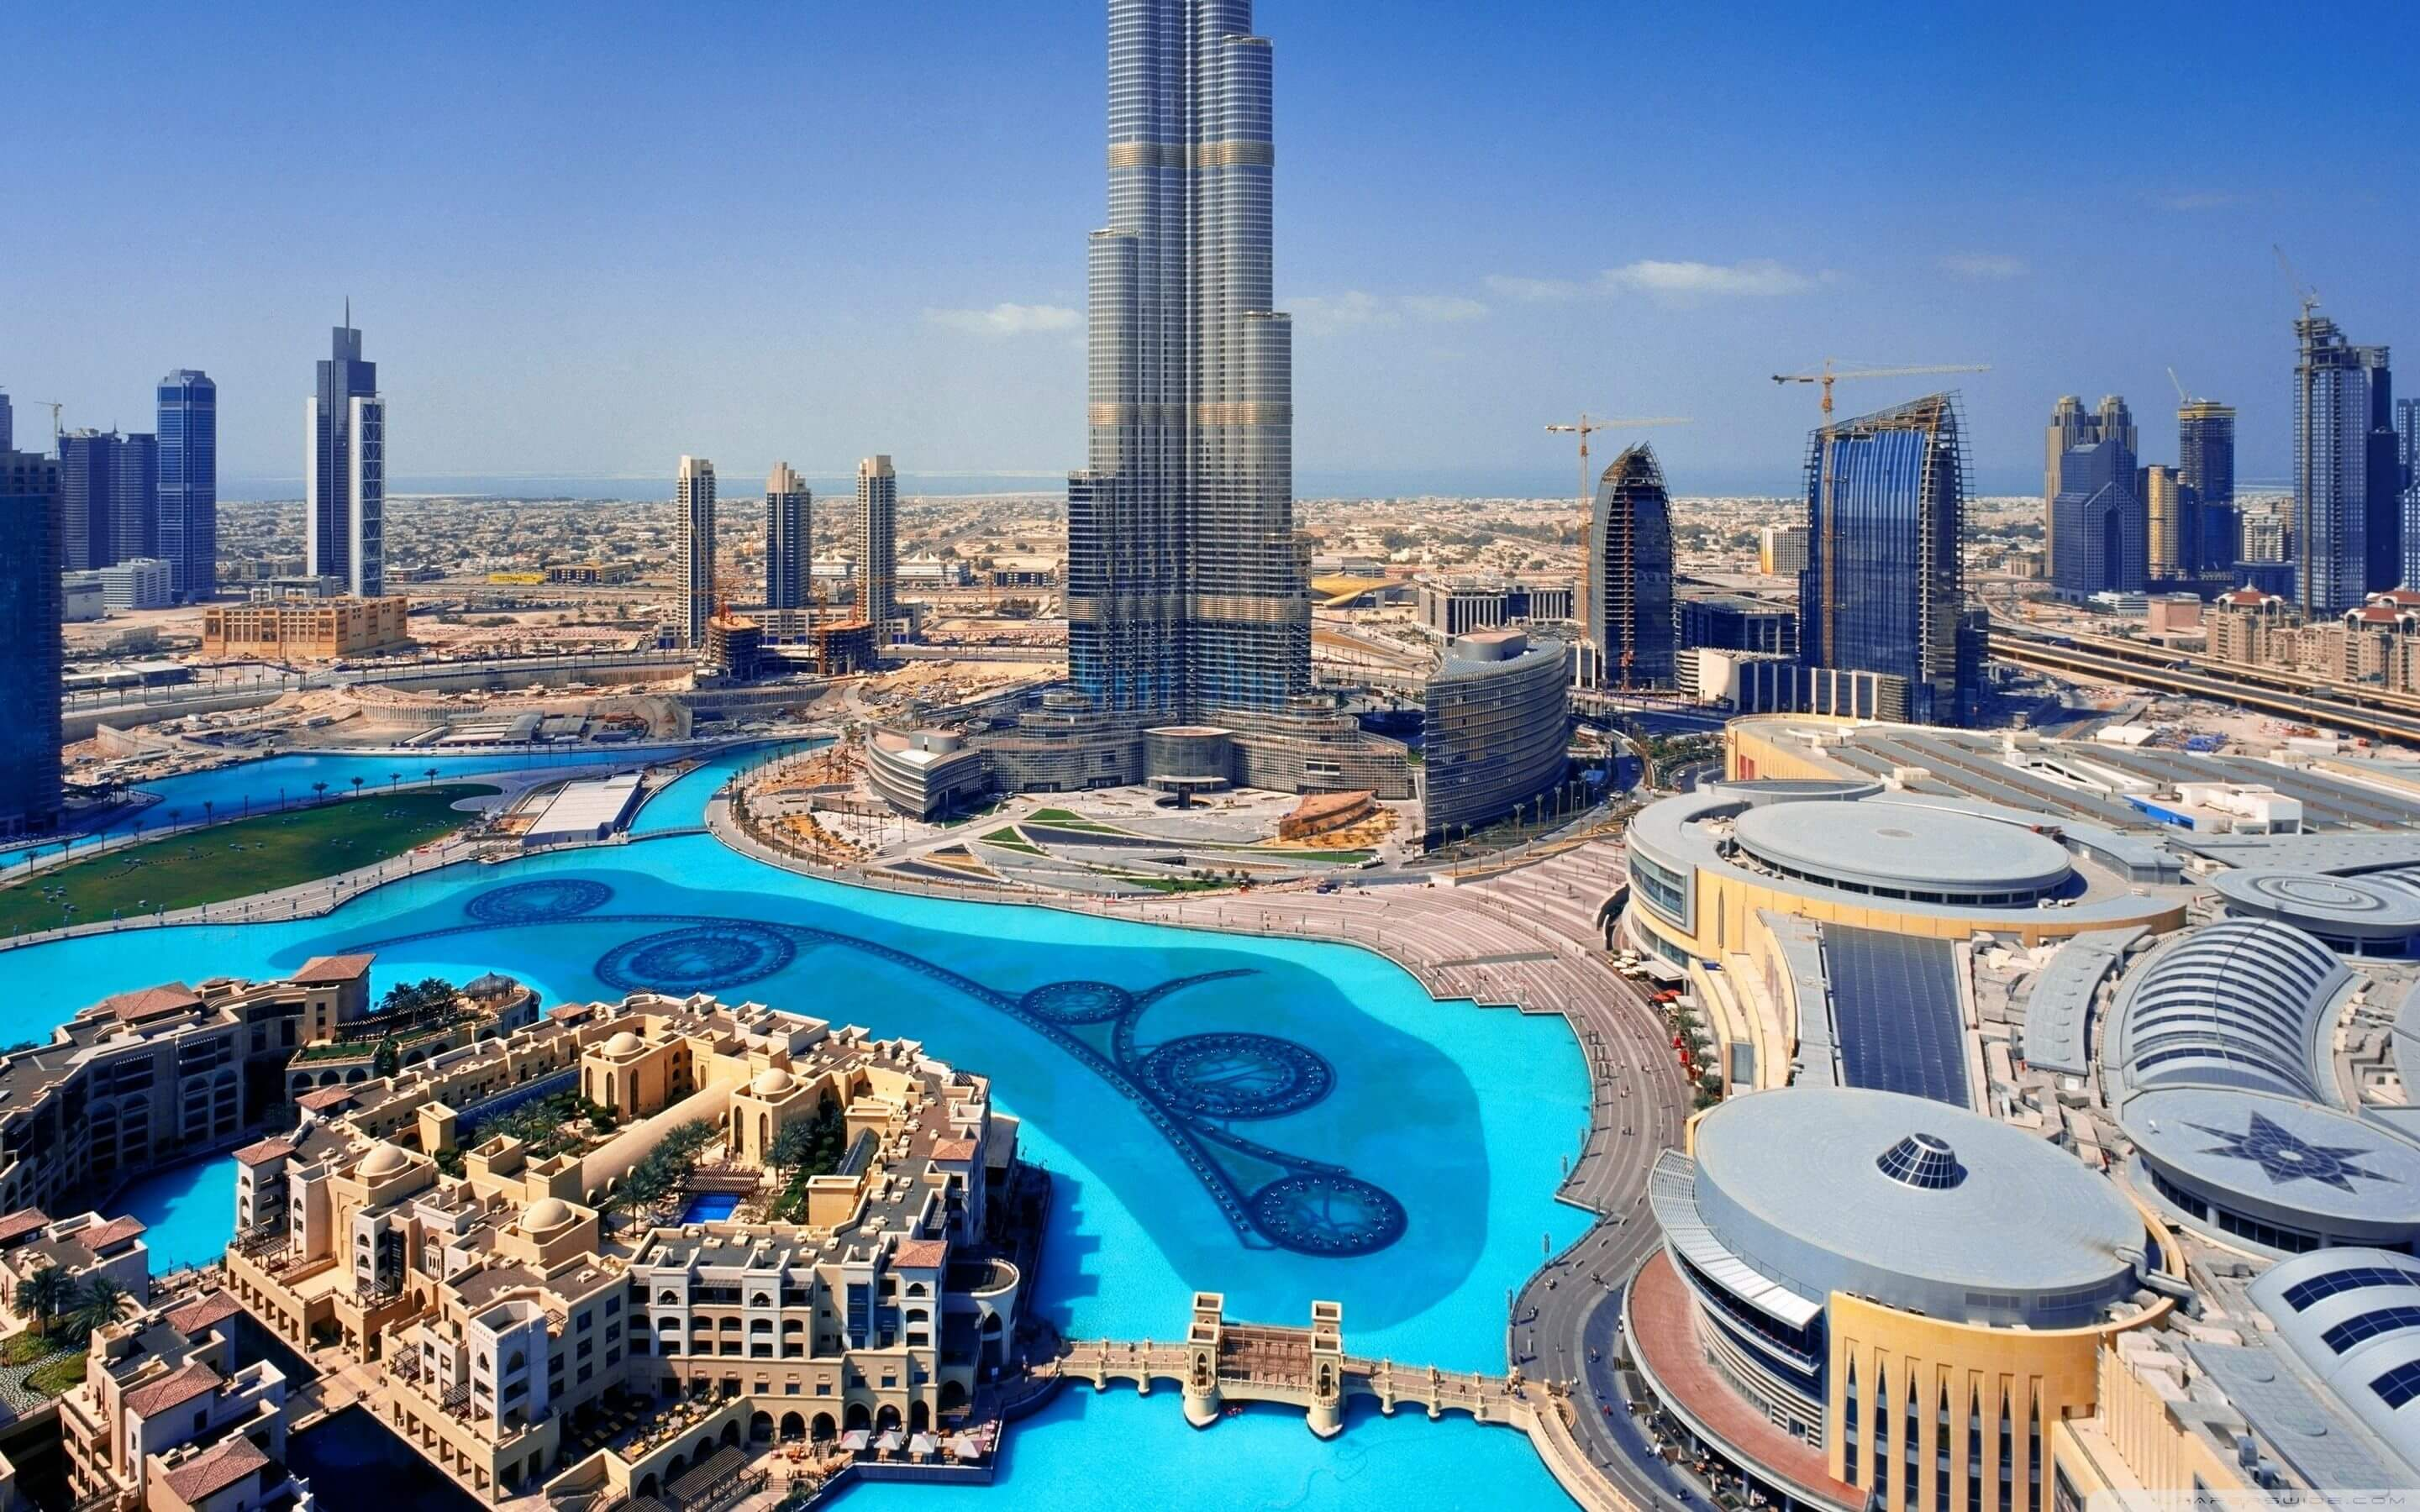 4 Din, Dubai In Group Holiday Travel and Tour Package